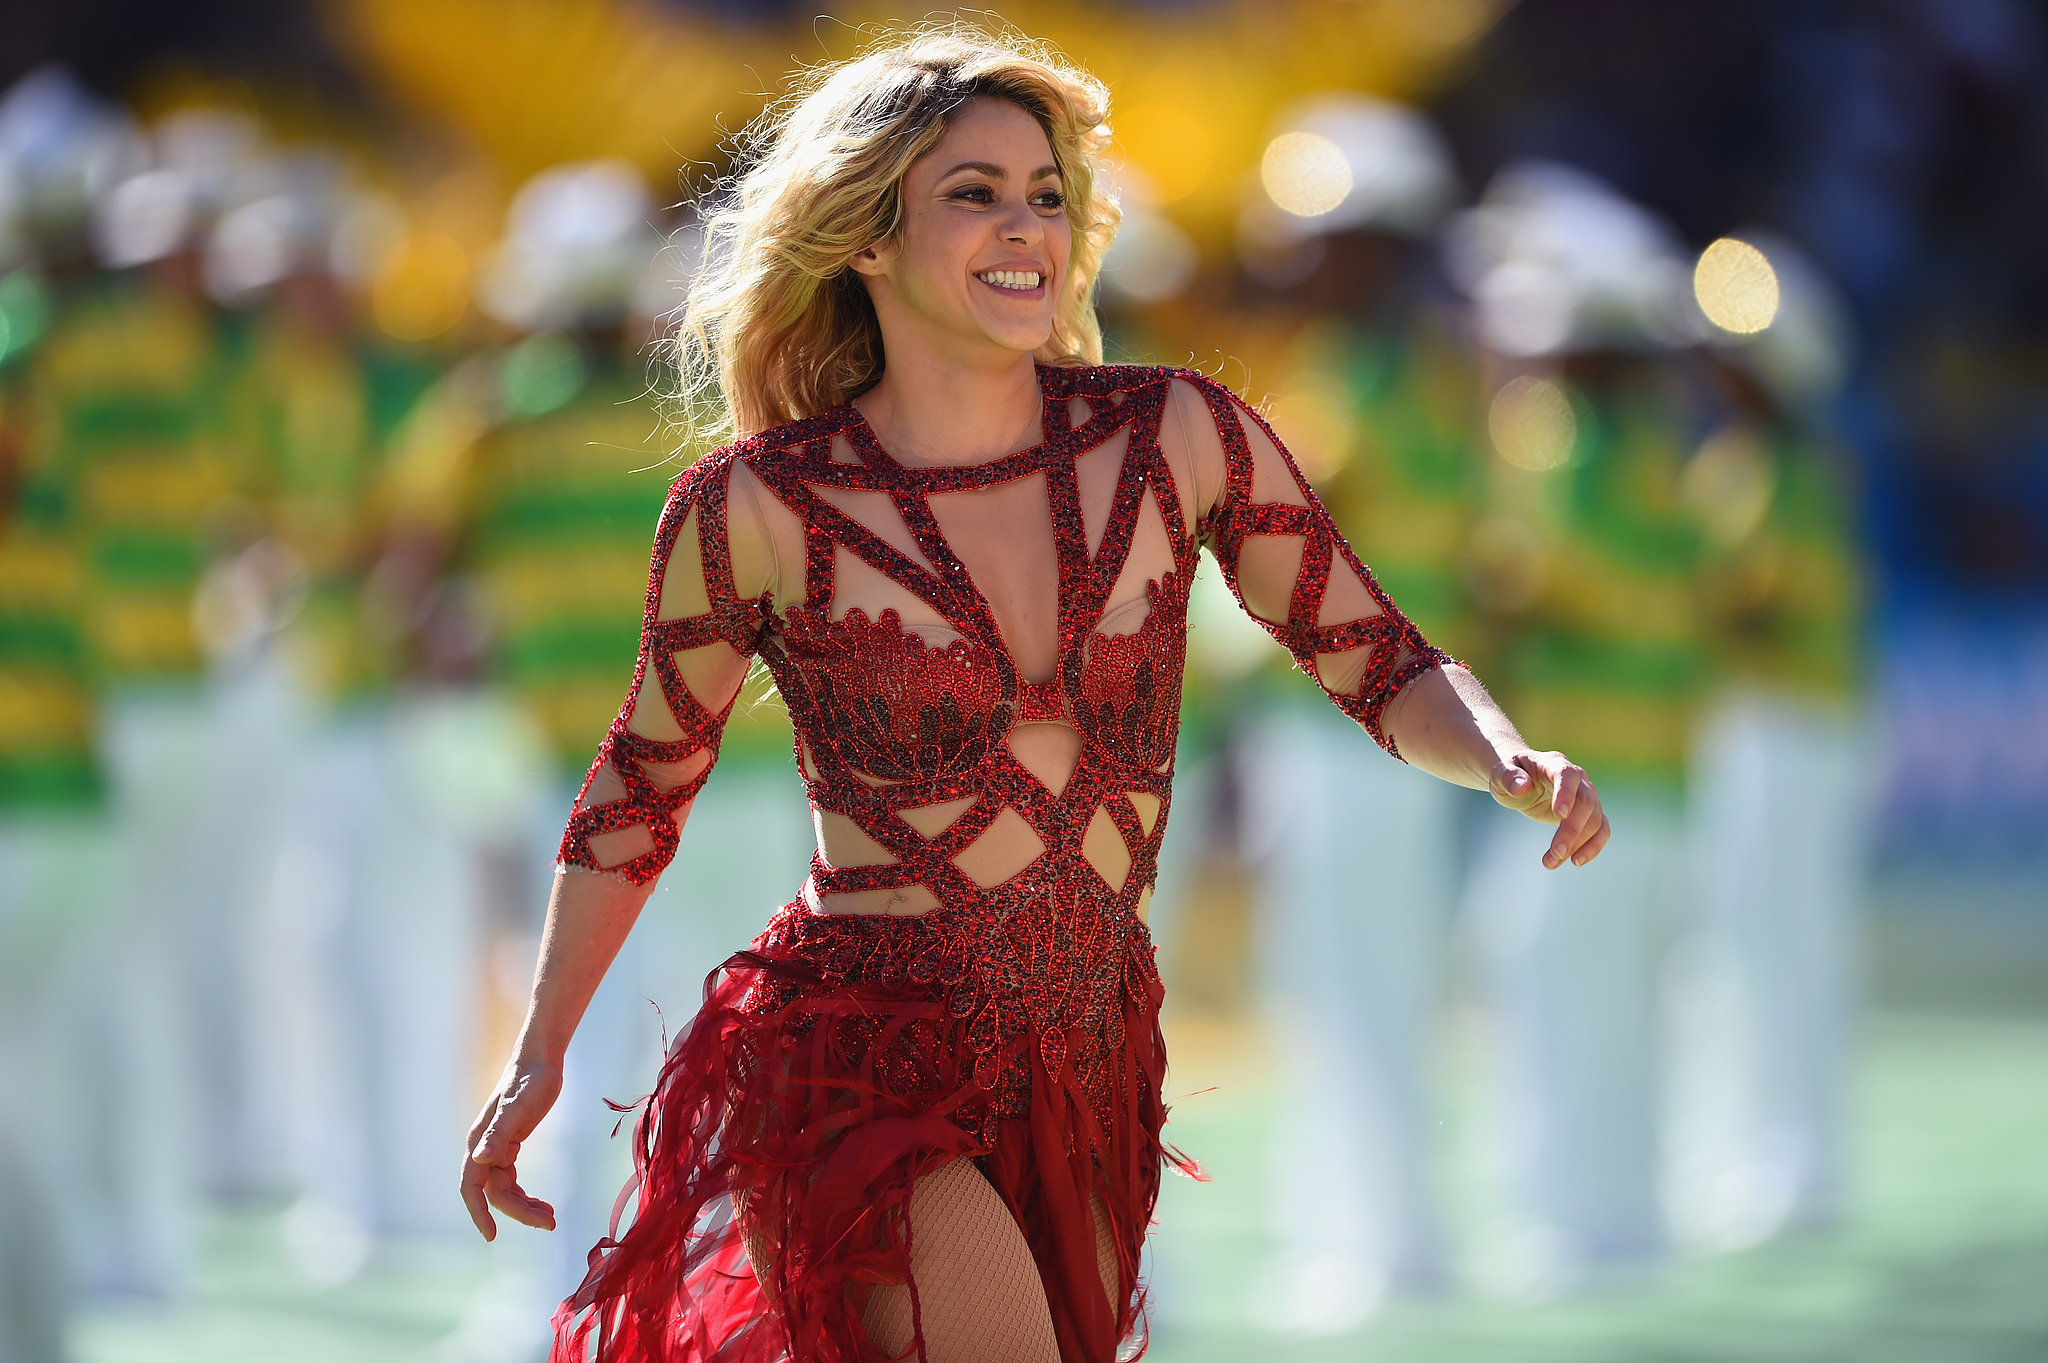 Shakira performed ahead of the 2014 World Cup final.